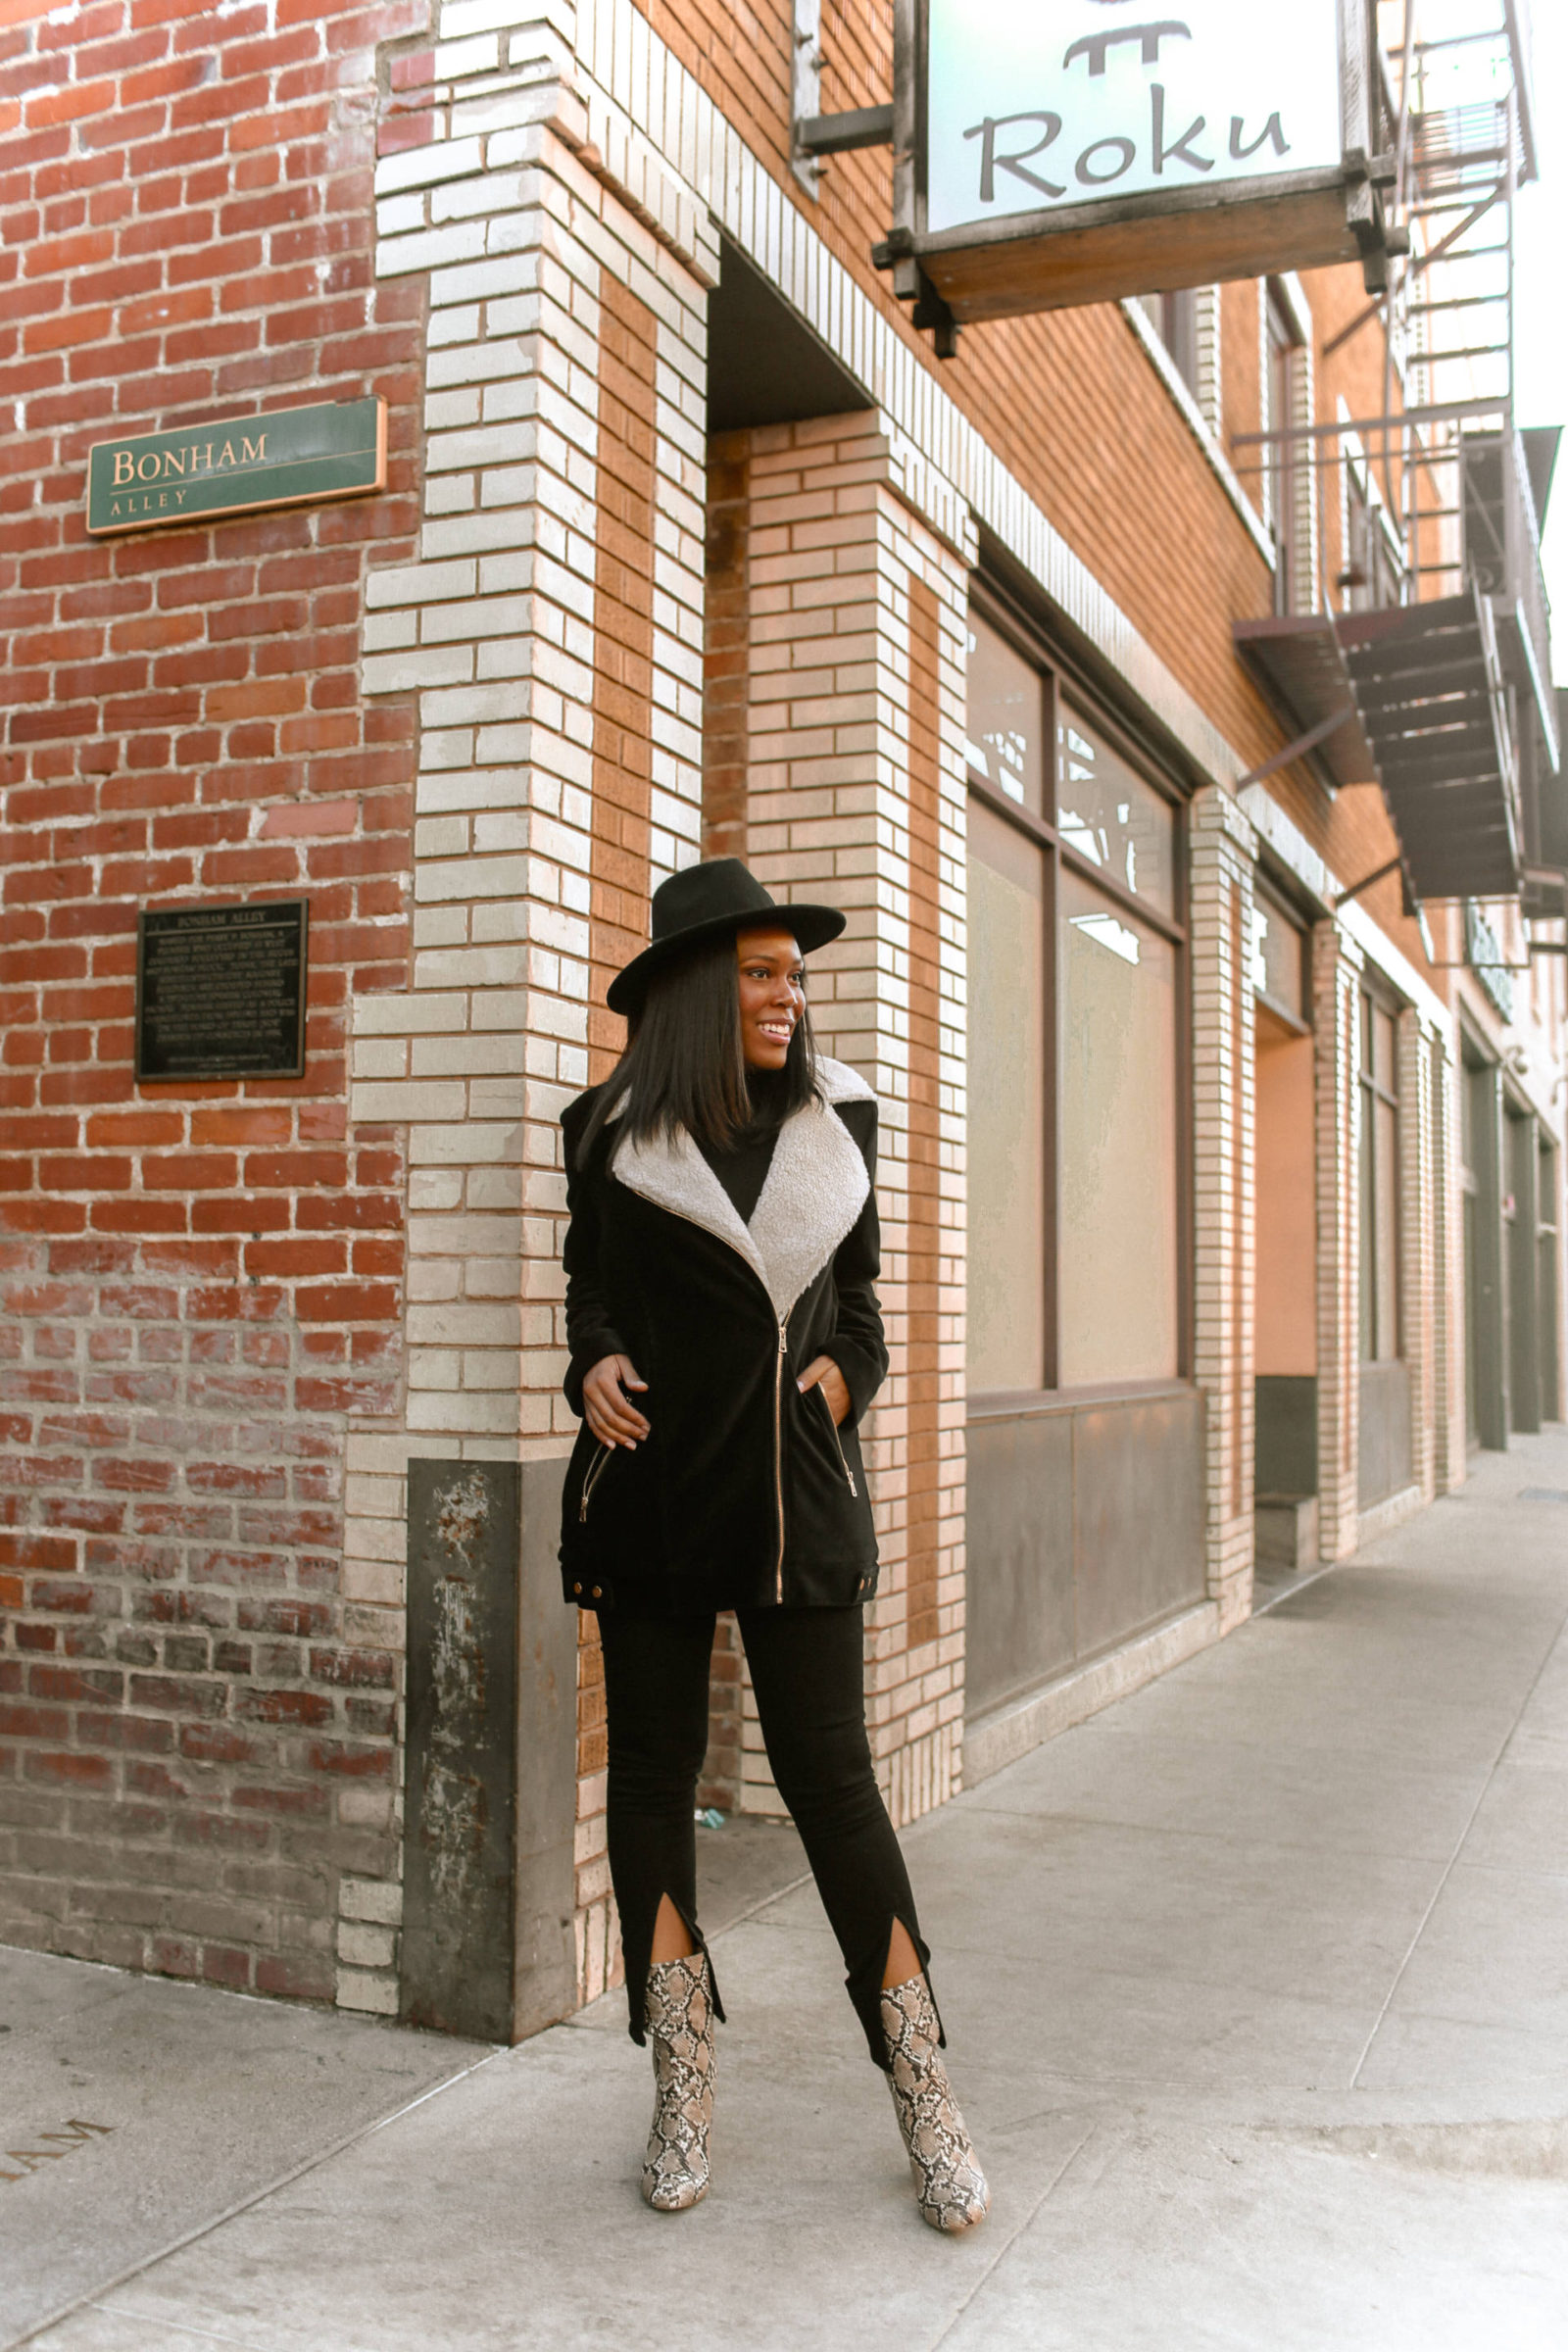 Snakesin Booties Outfit -Le Fab Chic